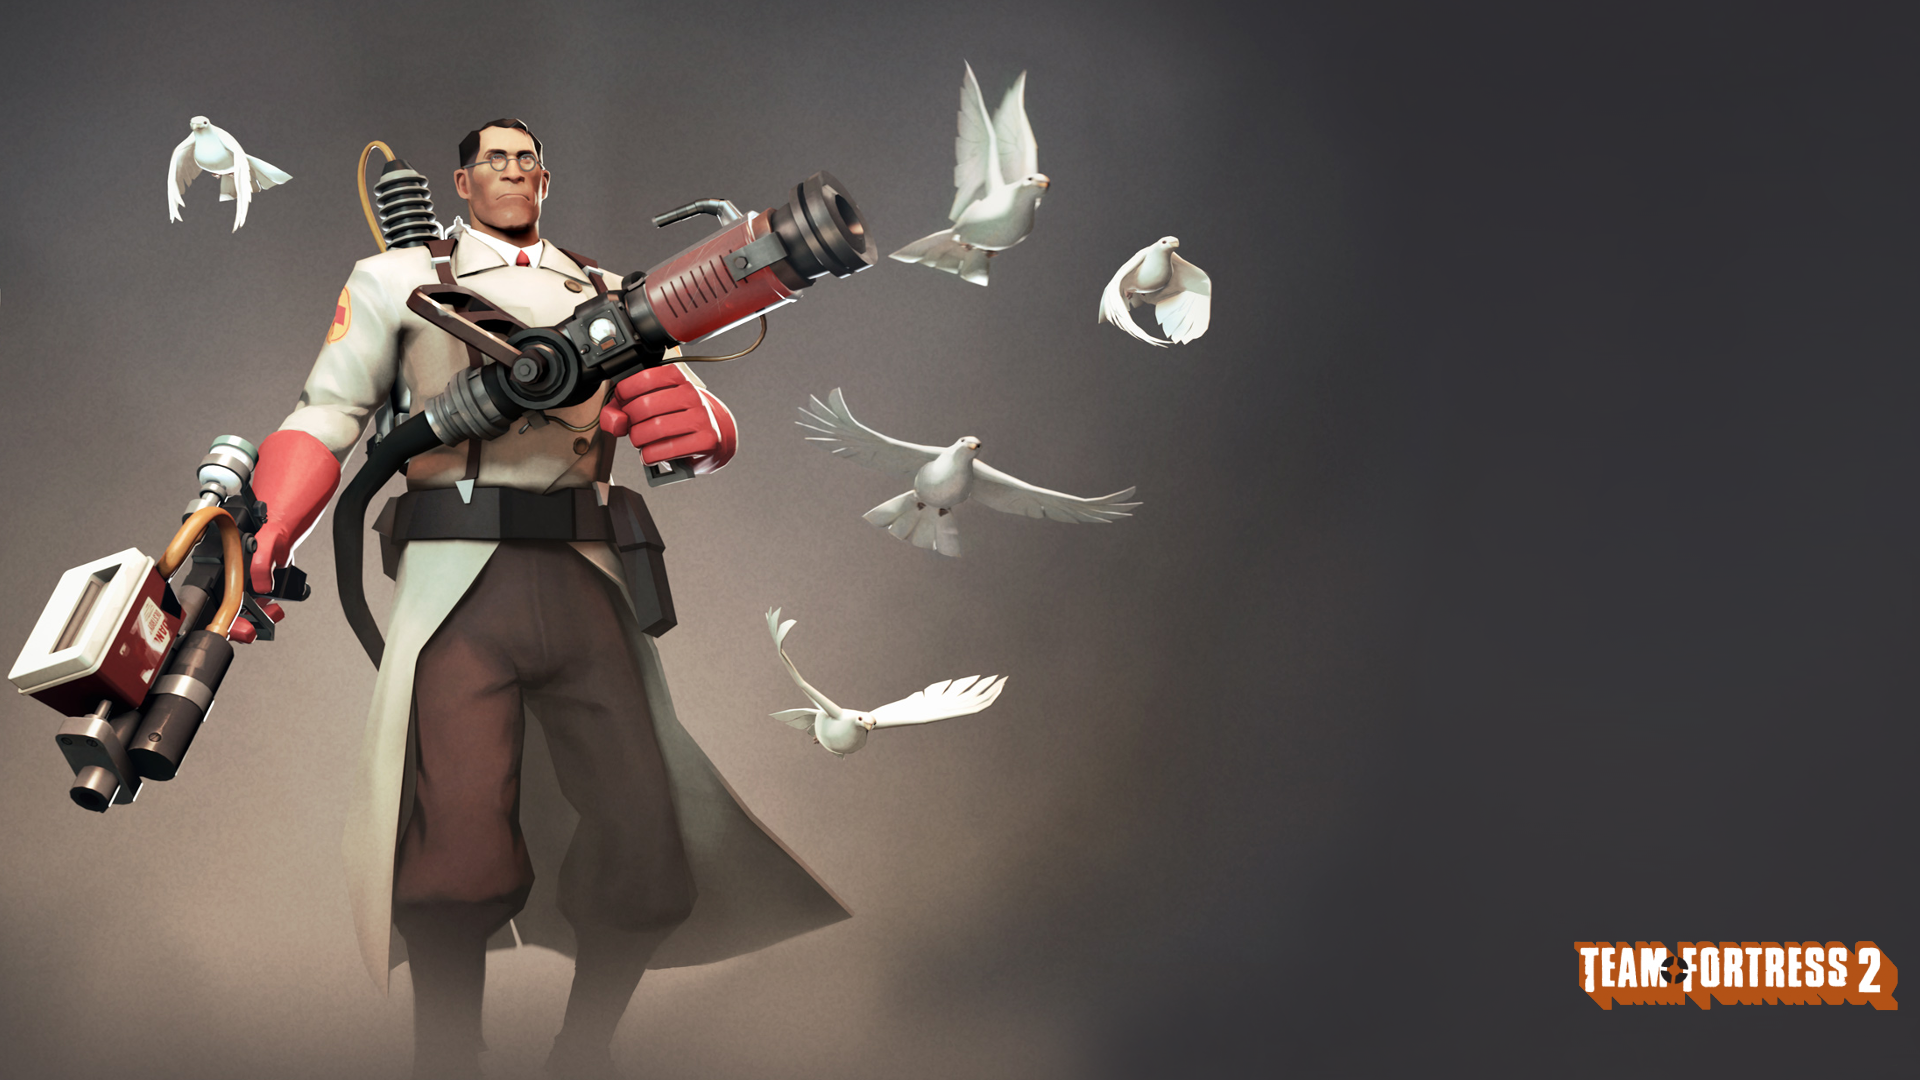 Medic tf team fortress